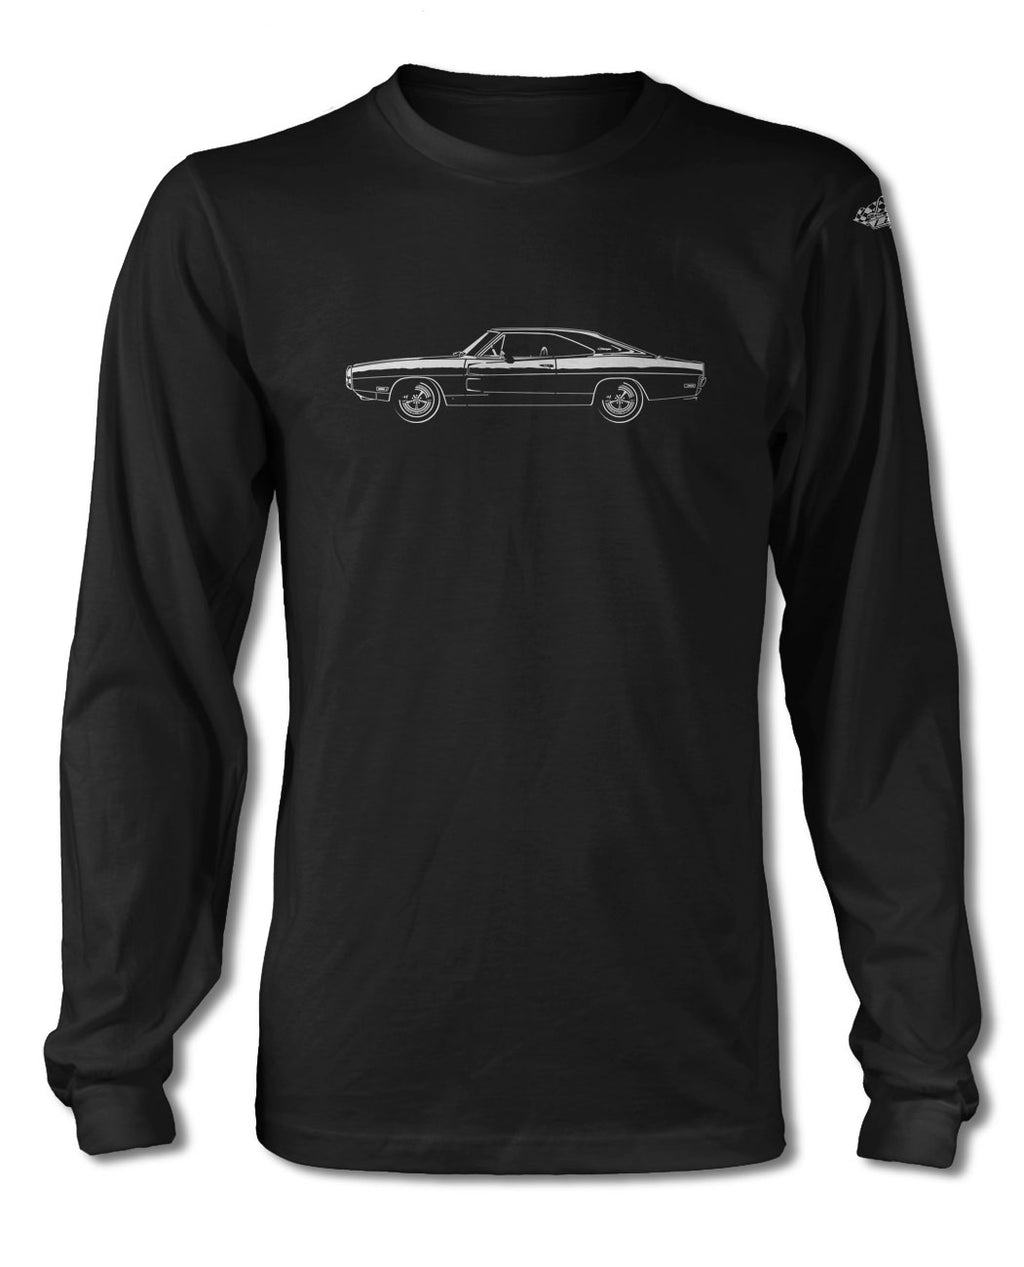 1970 Dodge Charger Base Coupe T-Shirt - Long Sleeves - Side View